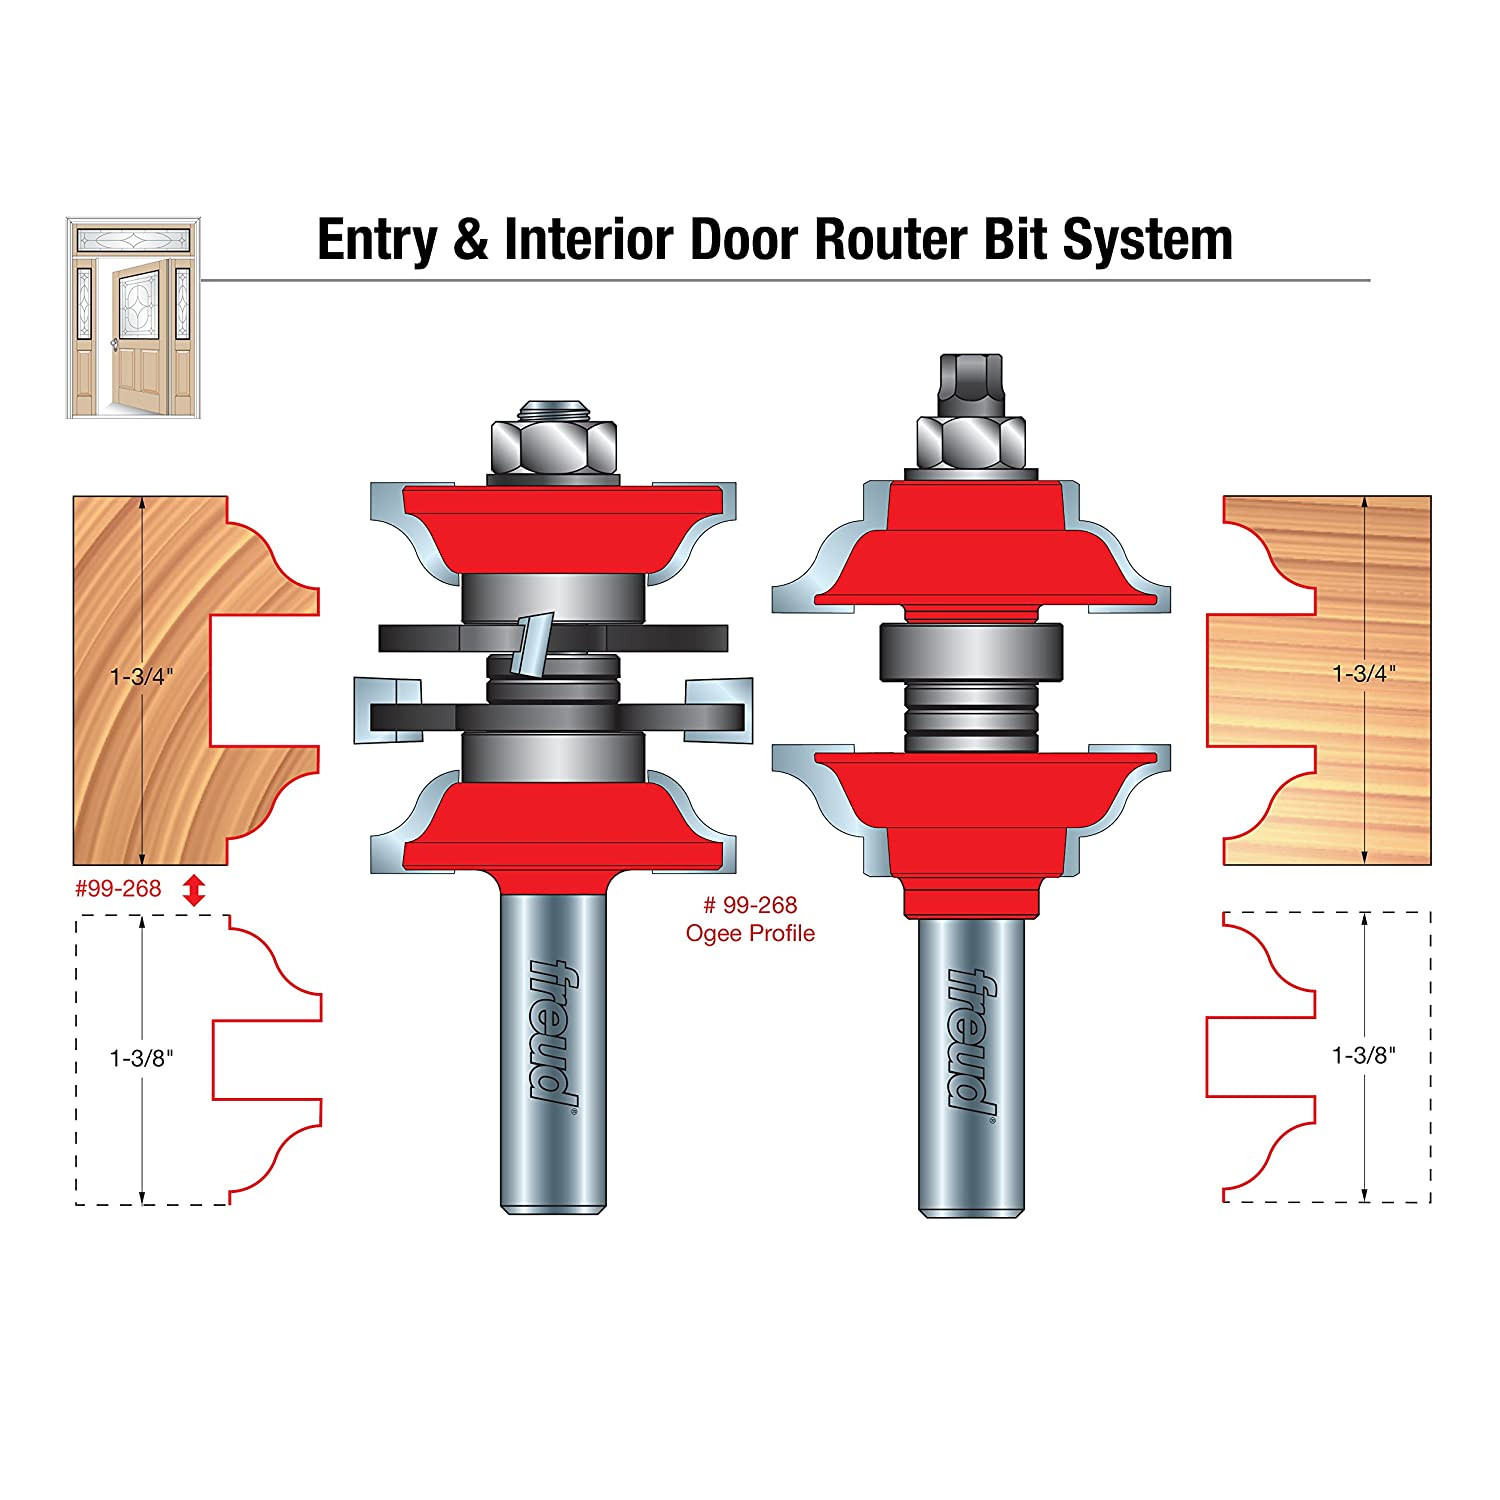 Entry \u0026 Interior Door Router Bit System with 1/2\  Shank (99-268) - Door And Window Router Bits - Amazon.com  sc 1 st  Amazon.com & Freud 1-7/8\